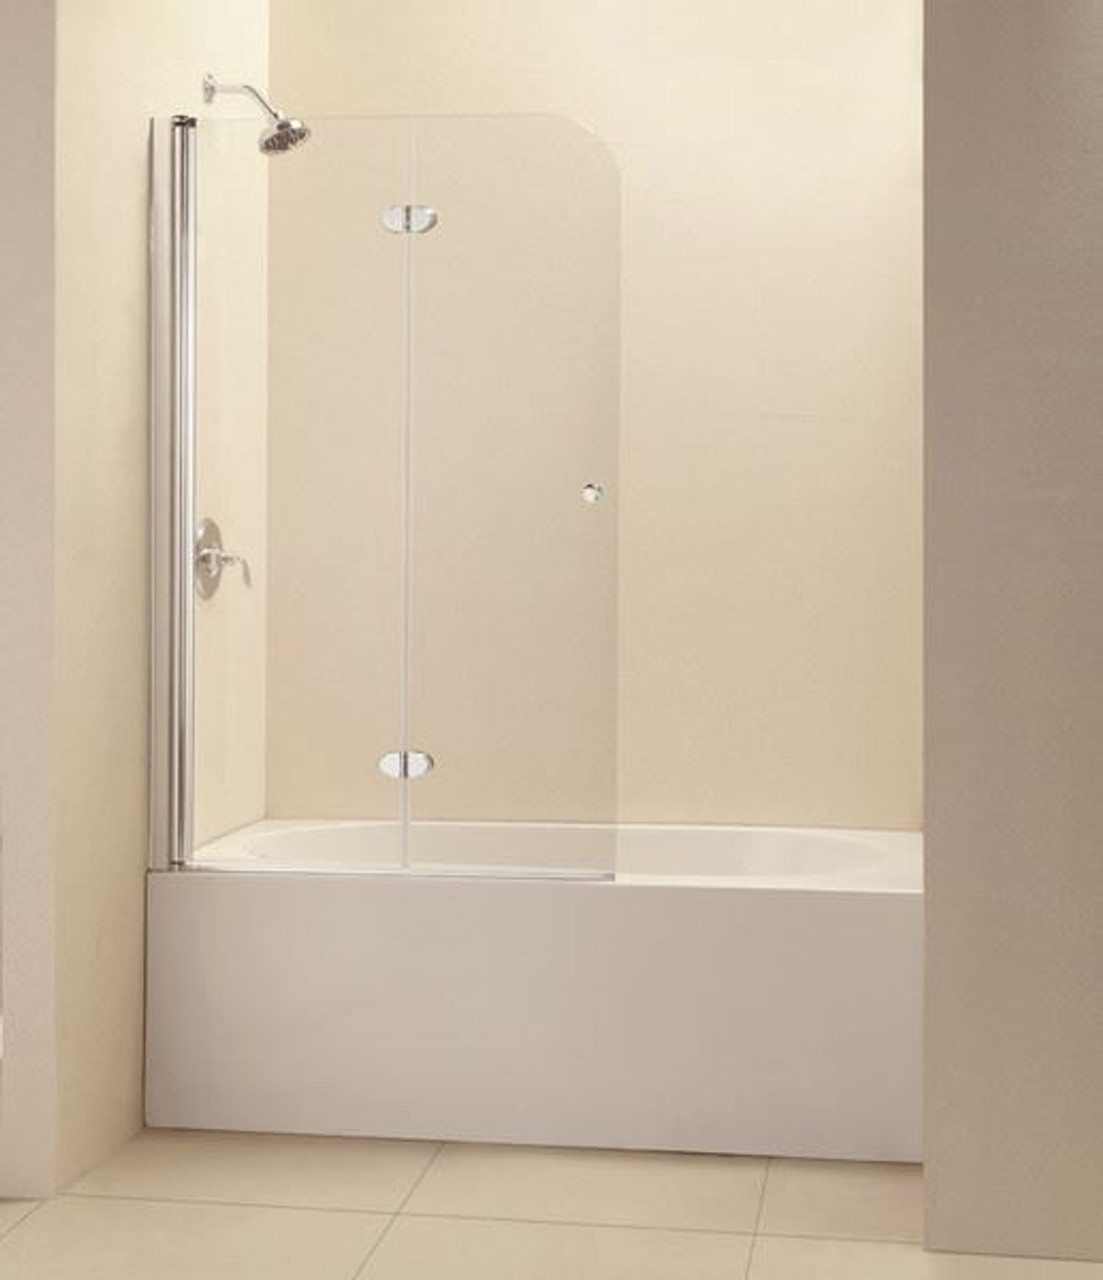 Aqua Fold Bathtub Door Folding Shdr 3636580